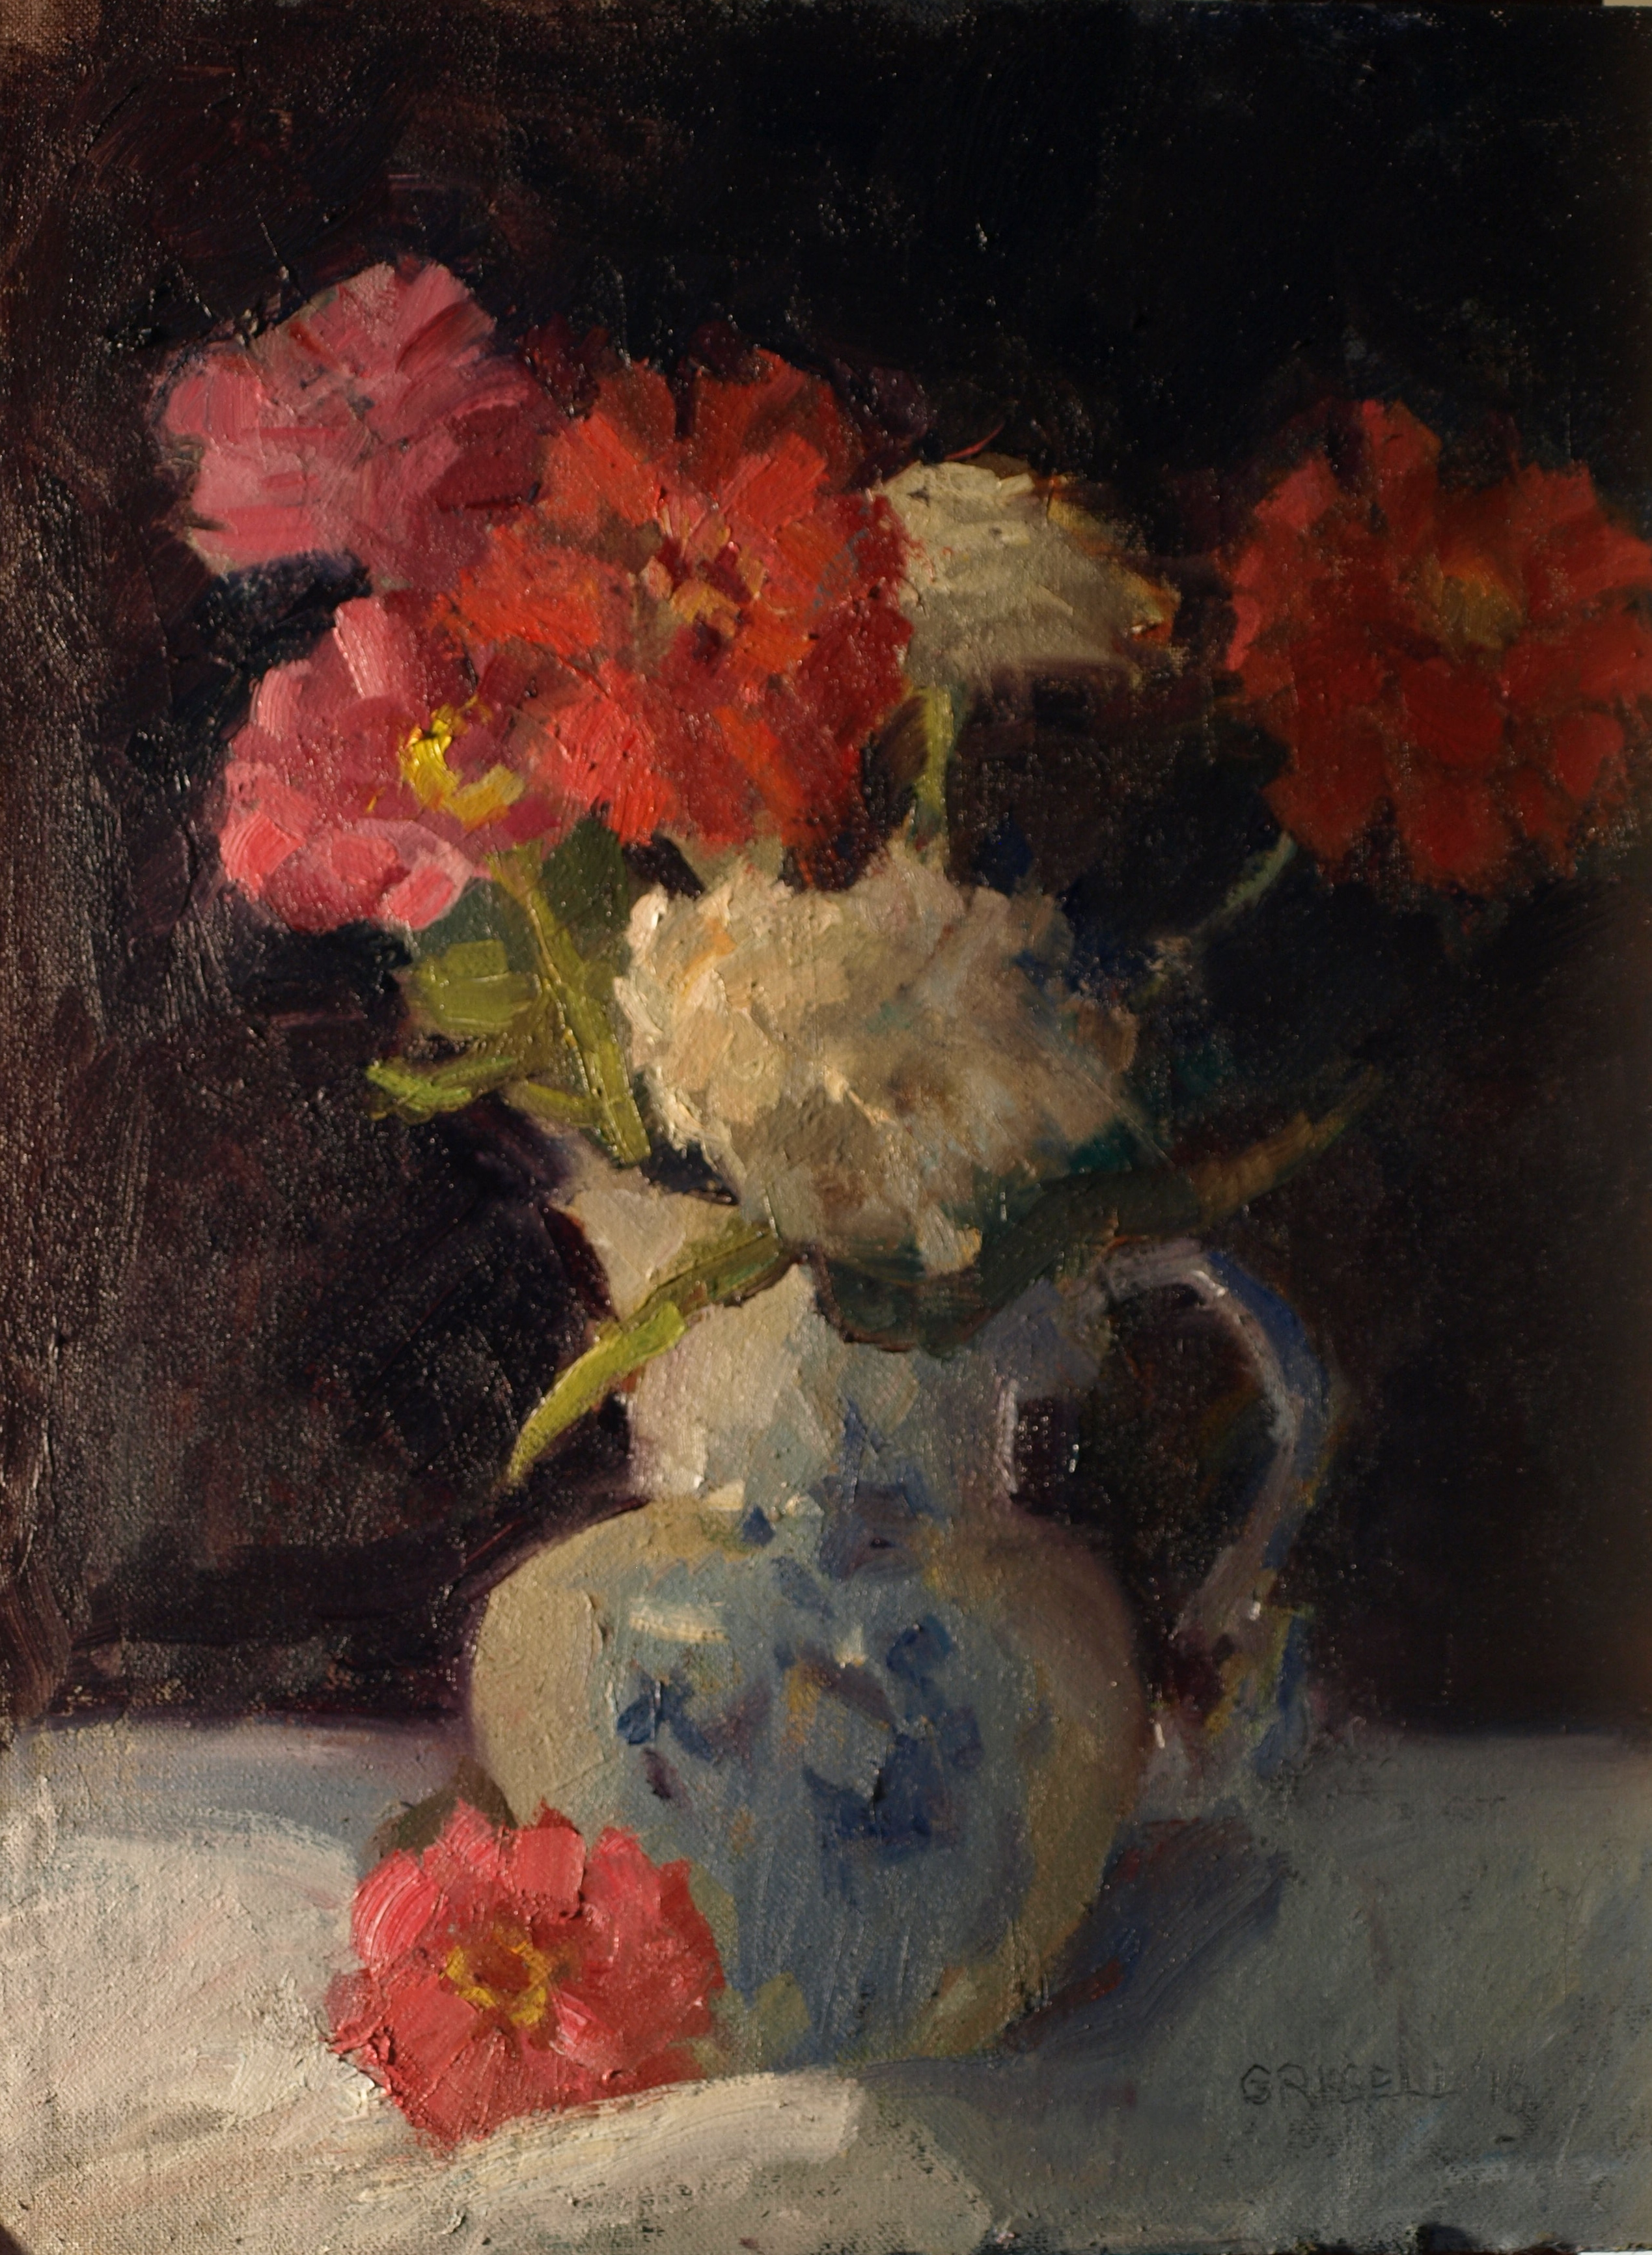 Zinnias and Pitcher, Oil on Canvas on Panel, 16 x 12 Inches, by Susan Grisell, $300